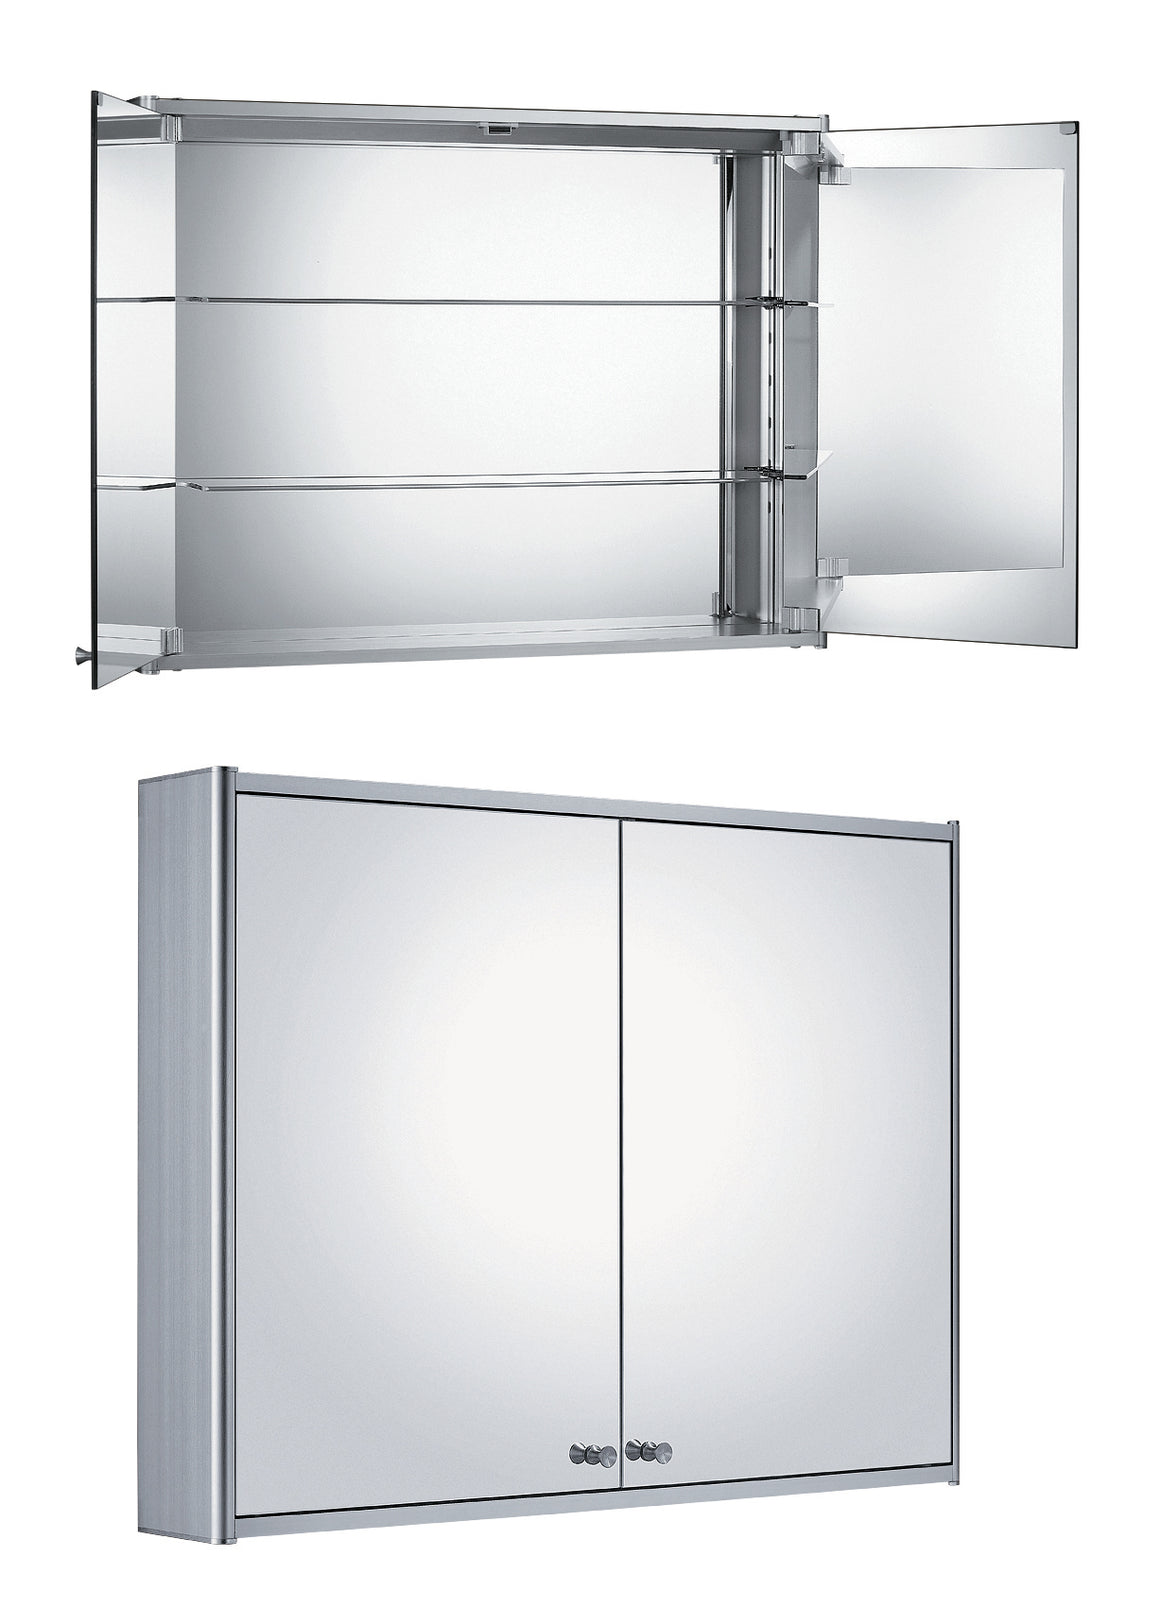 Double two sided mirrored door medicine cabinet with two adjustable glass shelves and mirror faced back wall.